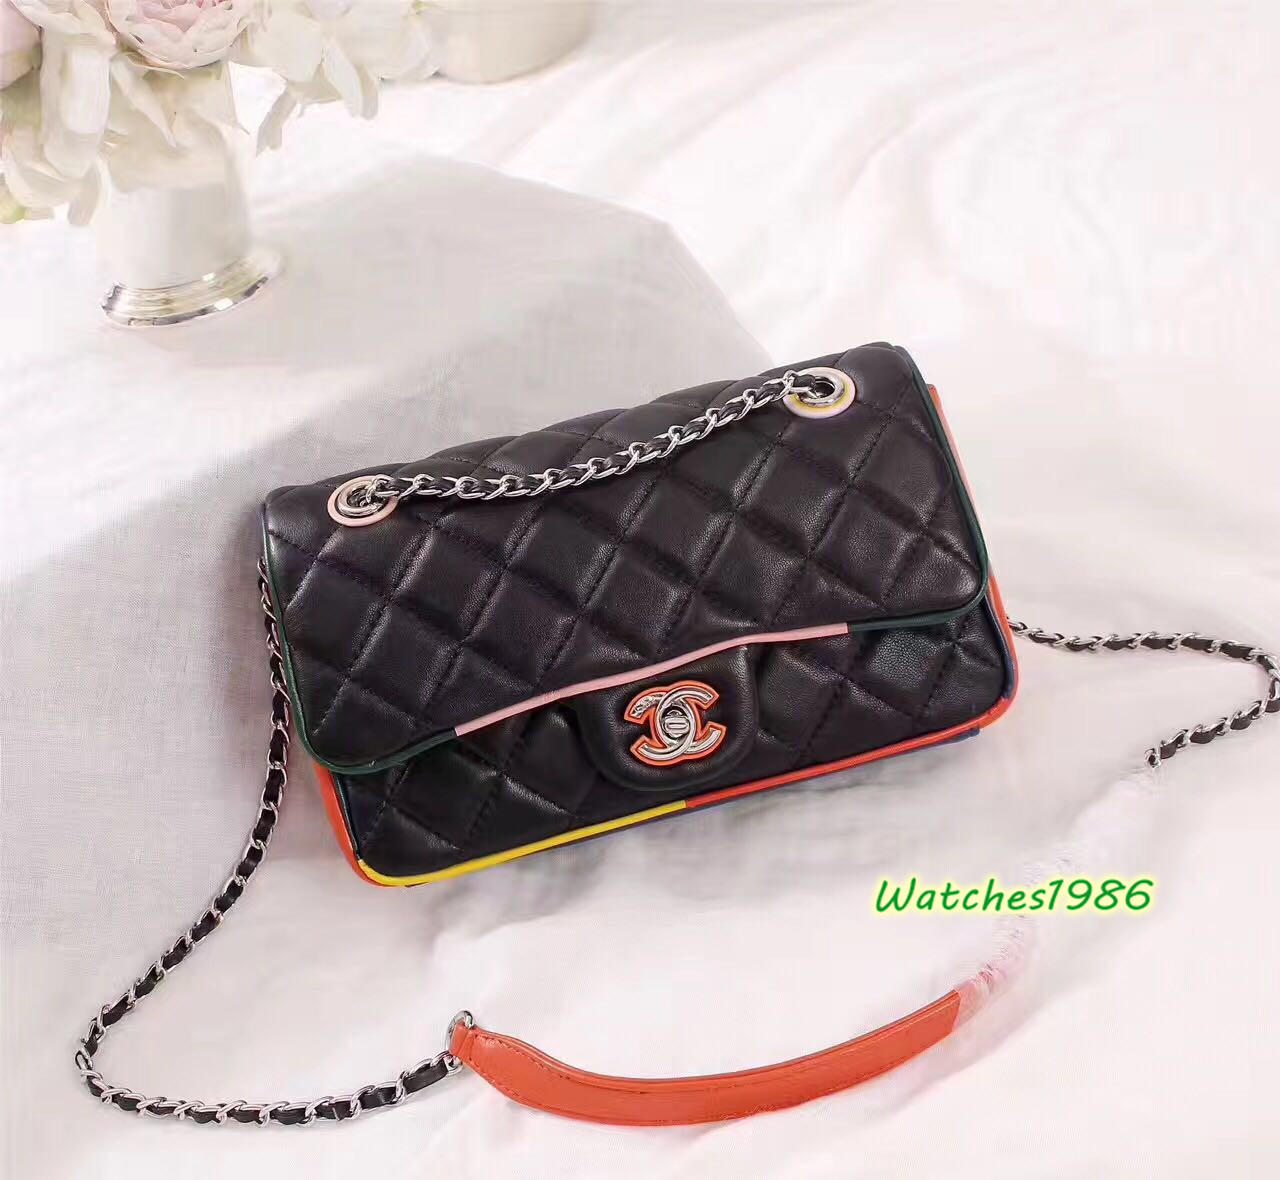 ef9ac7a27282 2017 latest Chanel purse replica handbag online for sale - AAA ...